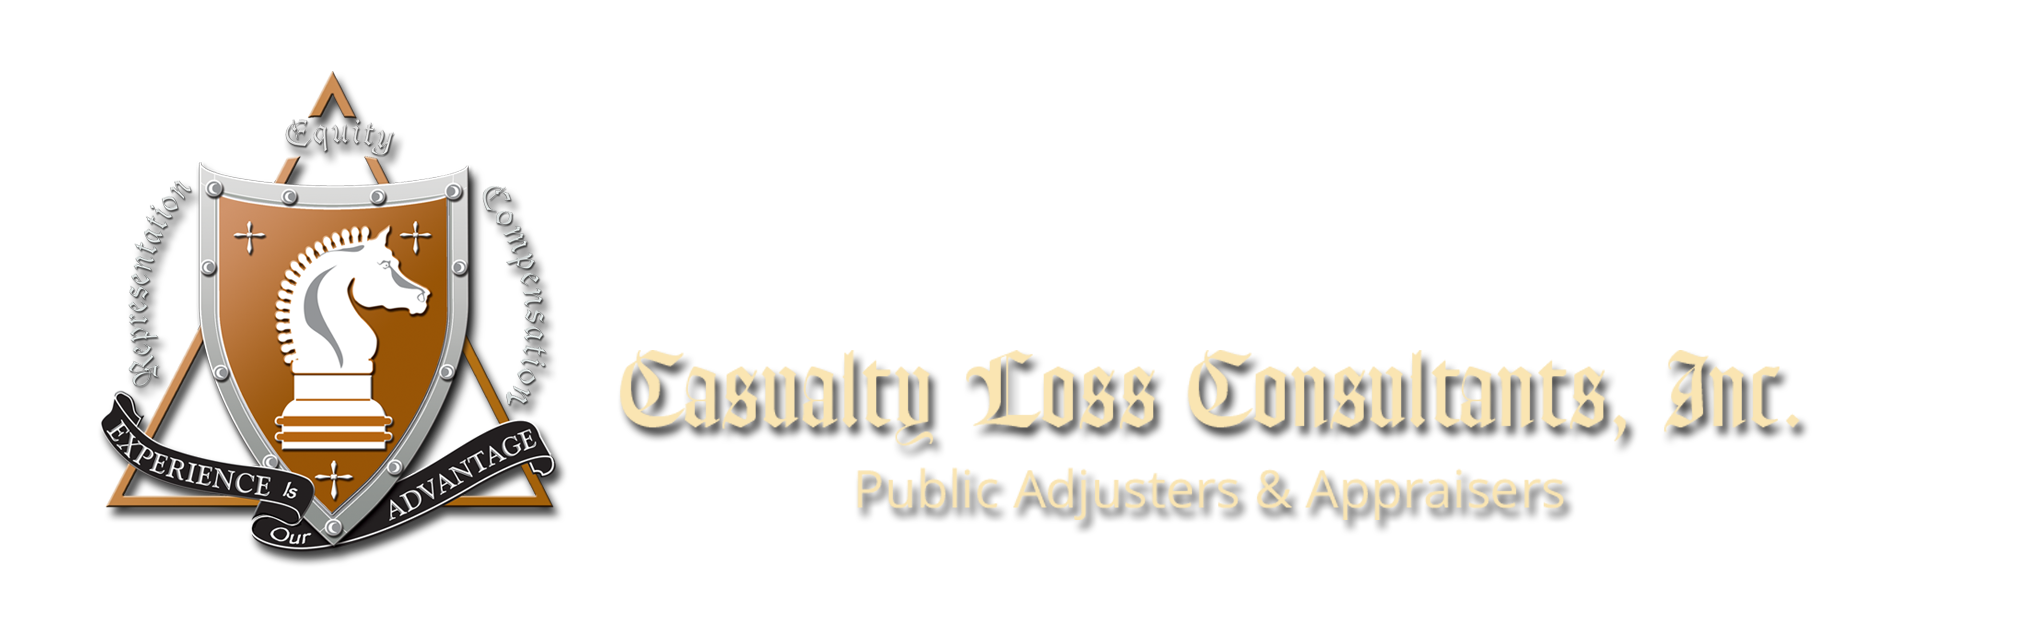 casualtylossconsultants.com